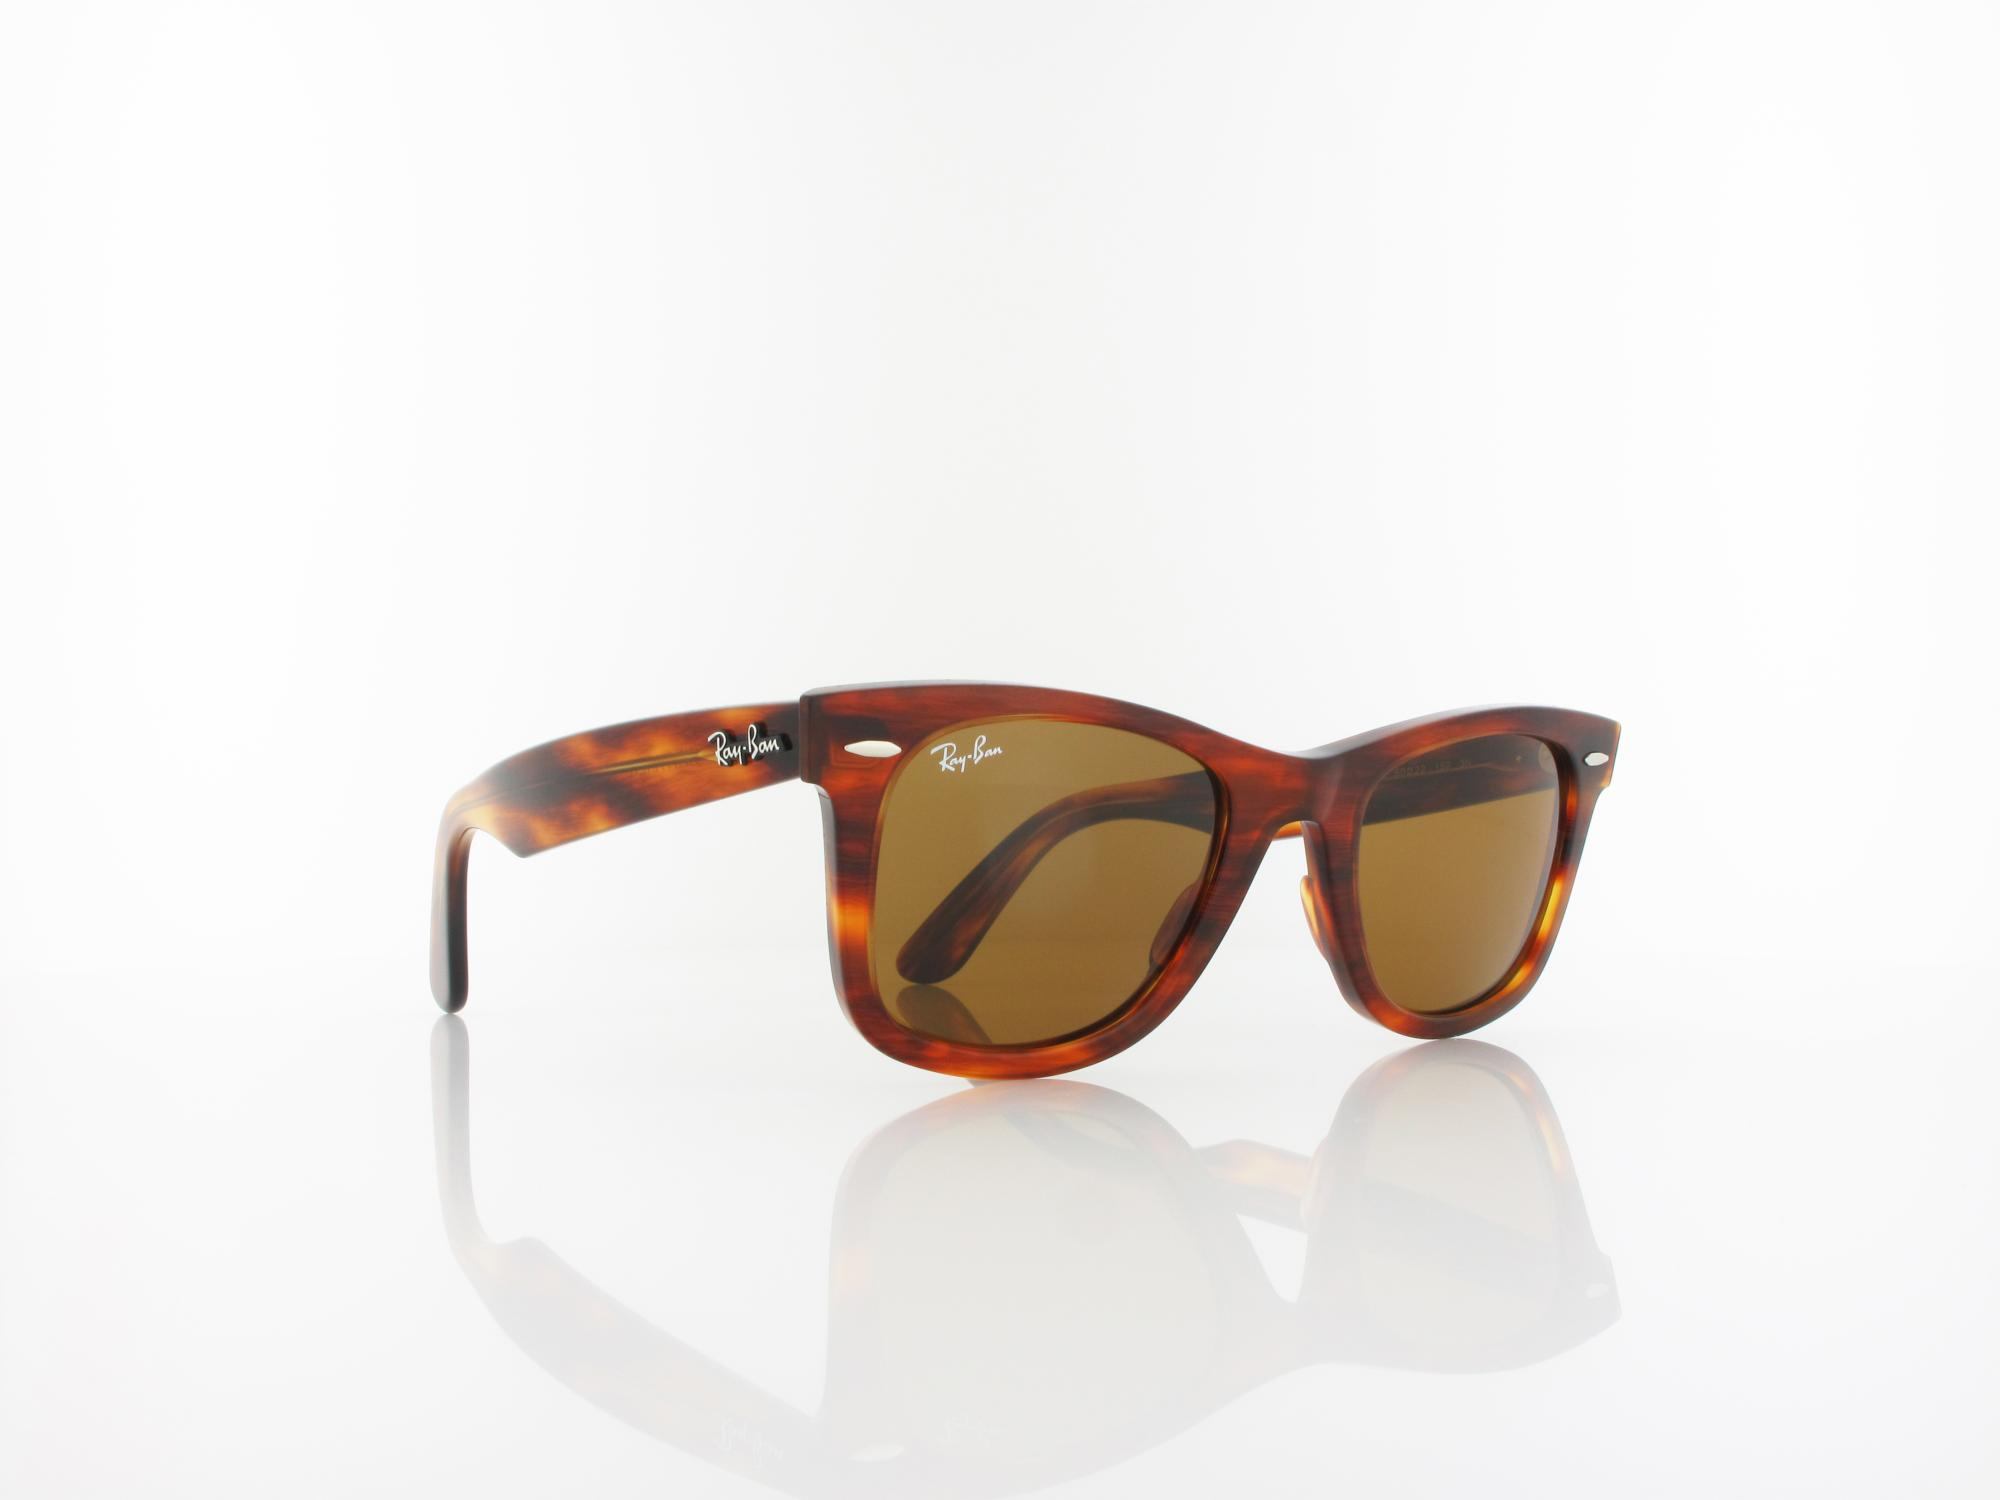 Ray Ban | Original Wayfarer RB2140 954 50 | light tortoise / crystal brown